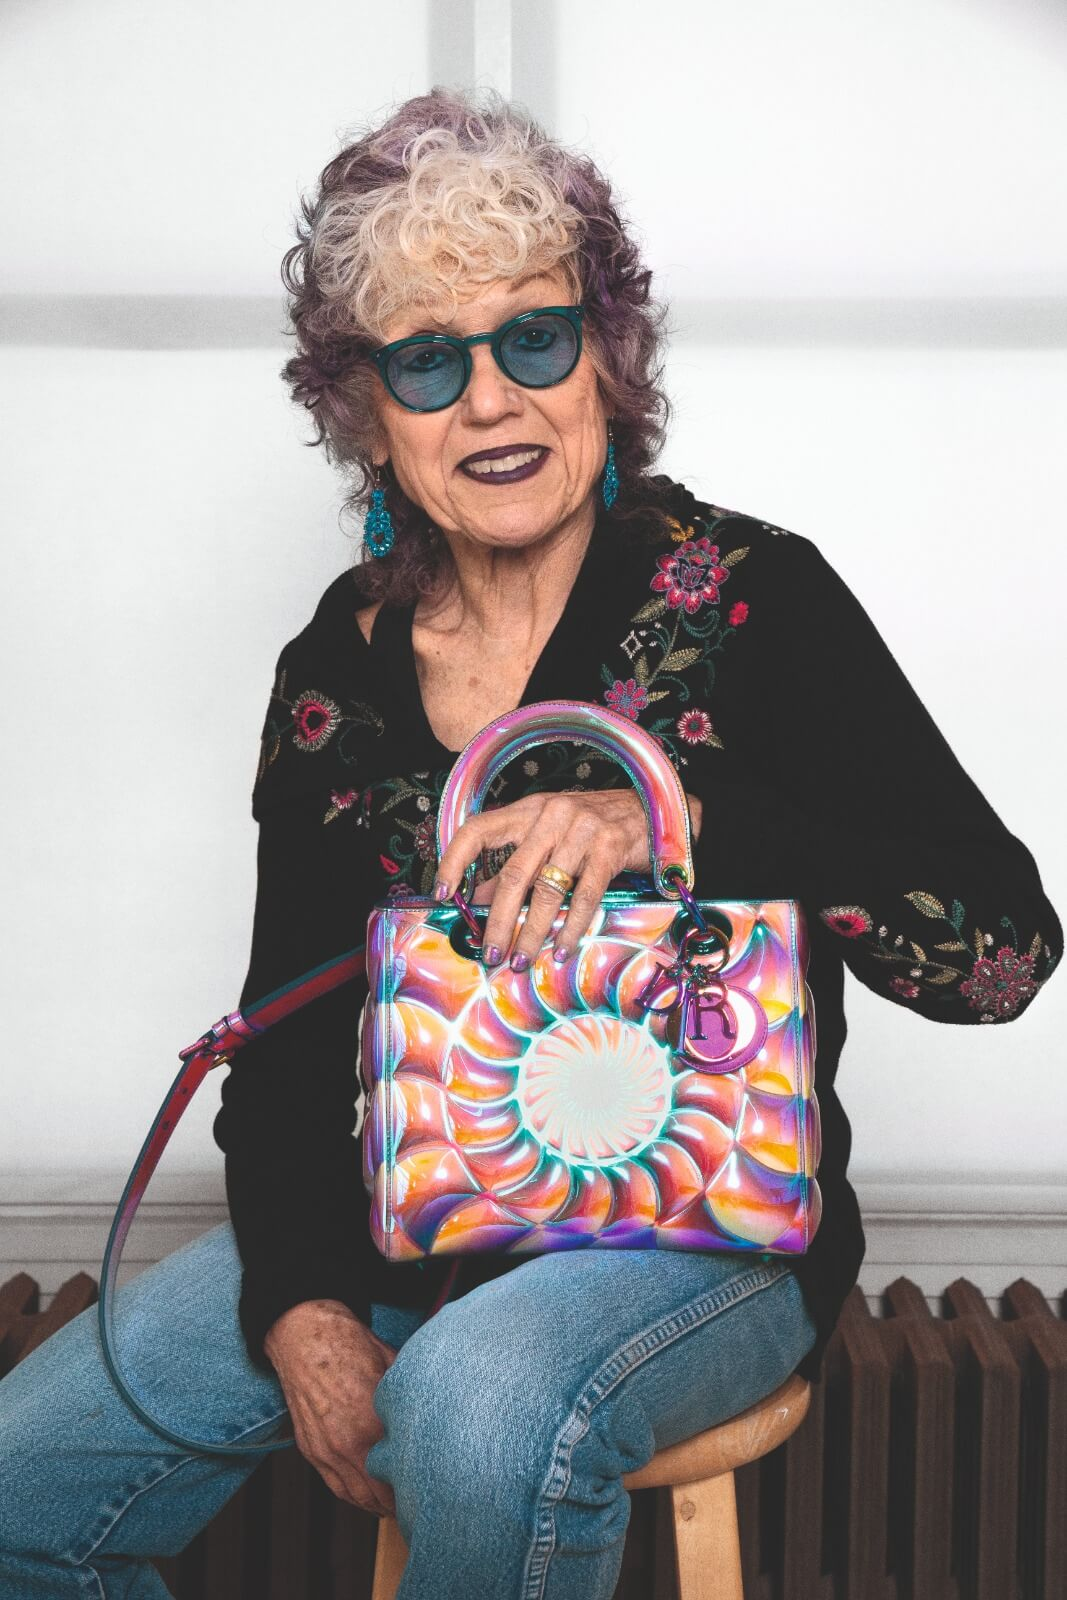 DIOR LADY ART LIMITED EDITION IN COLLABORATION WITH JUDY CHICAGO PHOTO BY DONALD WOODMAN